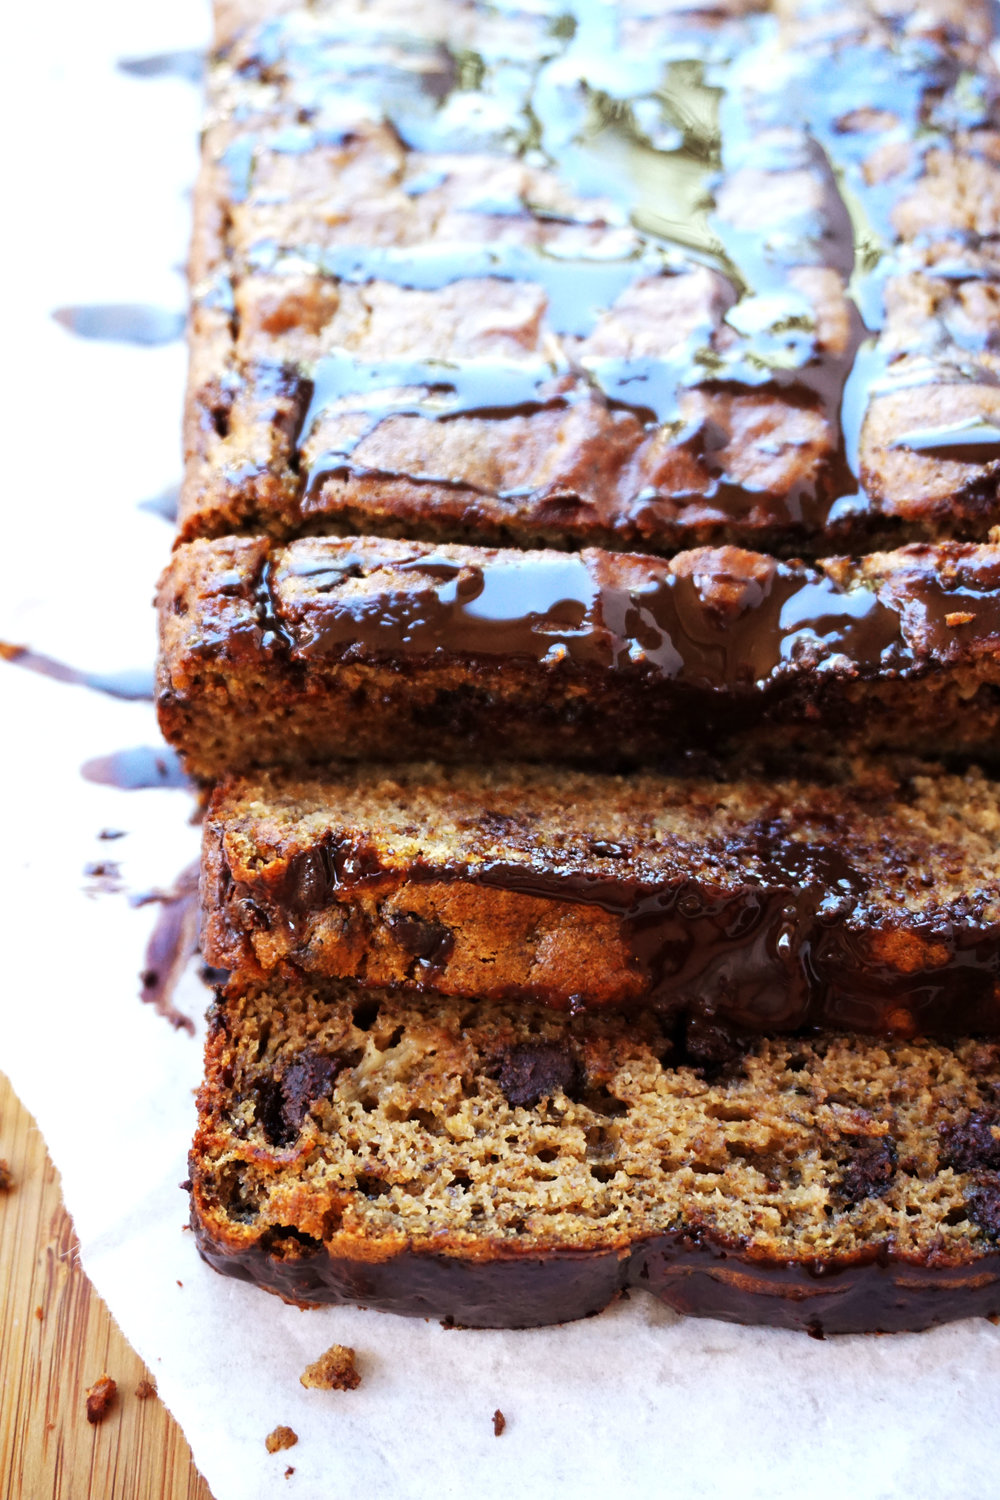 Chocolate Chip Banana Bread Breakfast Cake w/ Coconut Cacao Drizzle (GF, Paleo)